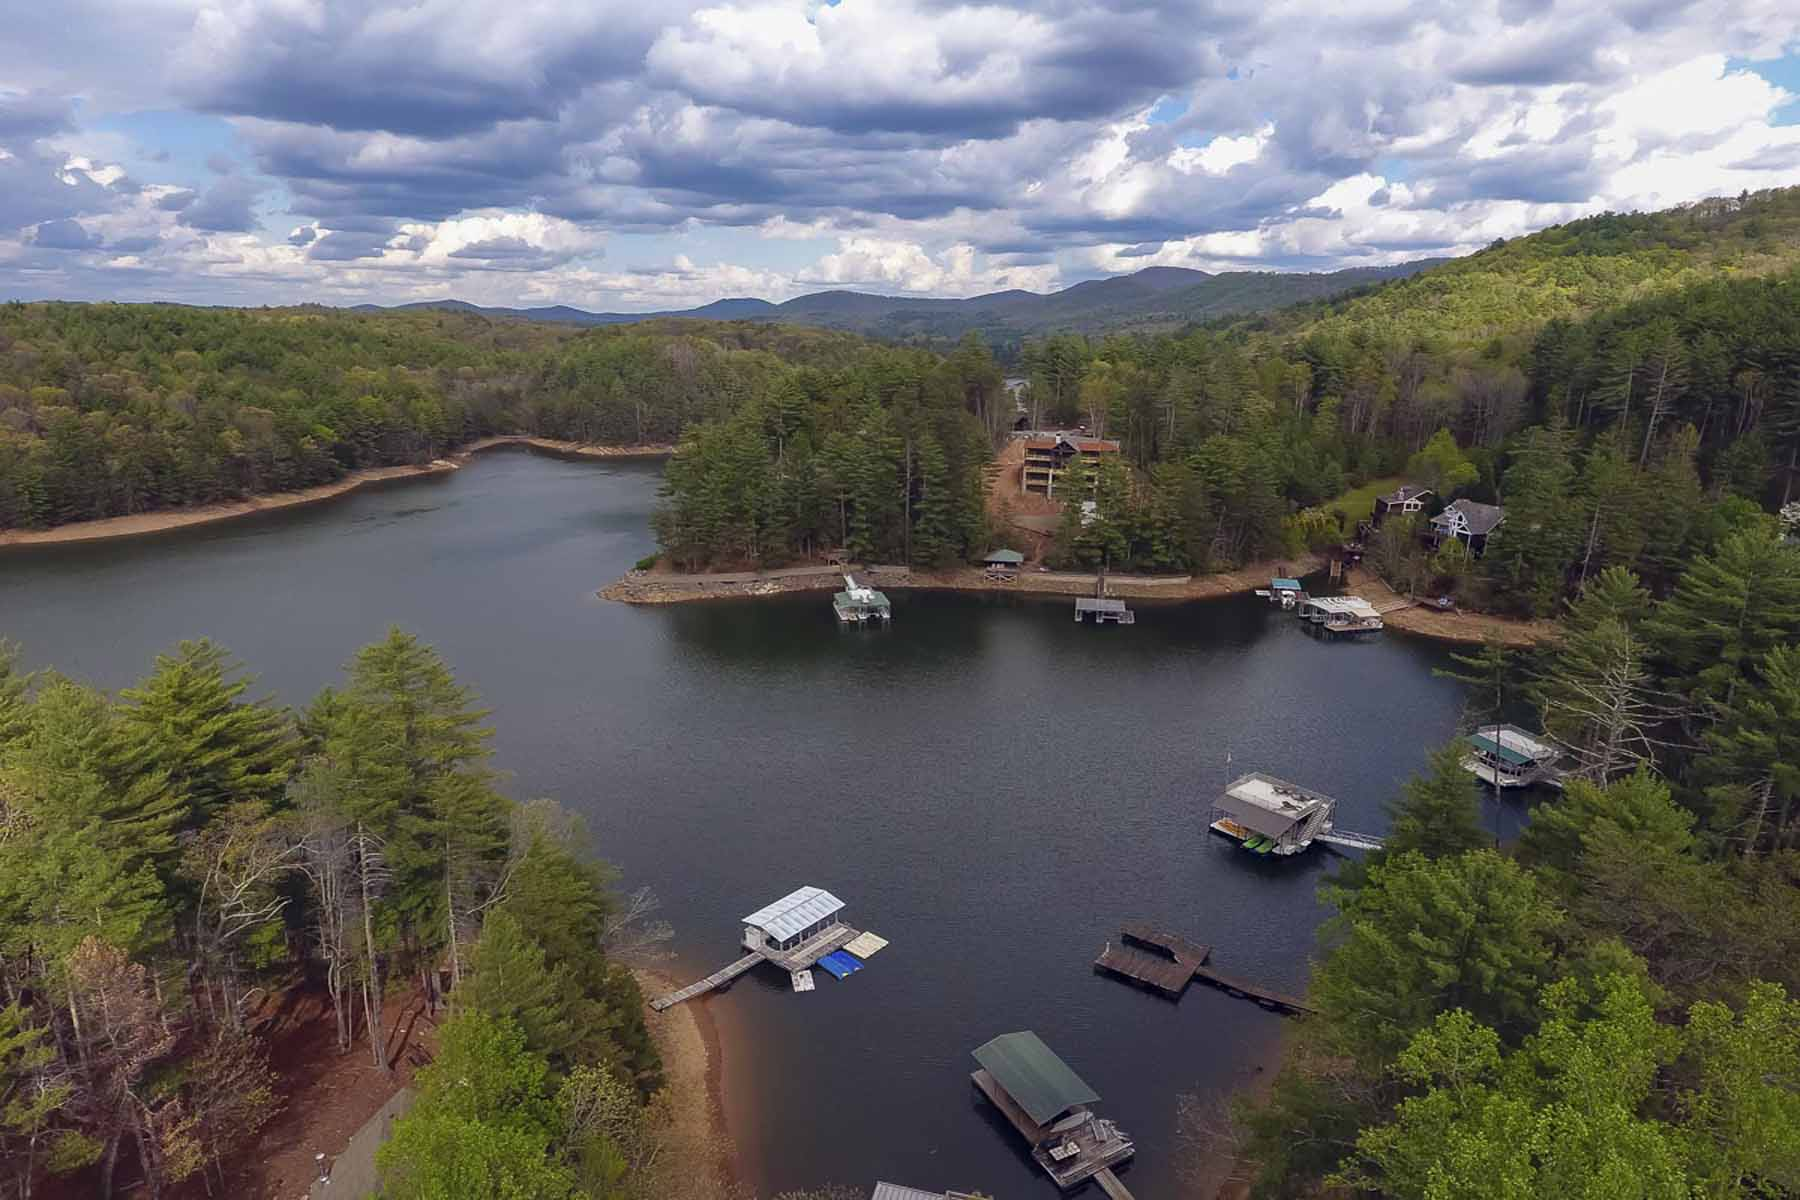 Casa Unifamiliar por un Venta en Lake Blue Ridge with Two Slip Dock 104 Tall Timber Lane Blue Ridge, Georgia, 30513 Estados Unidos